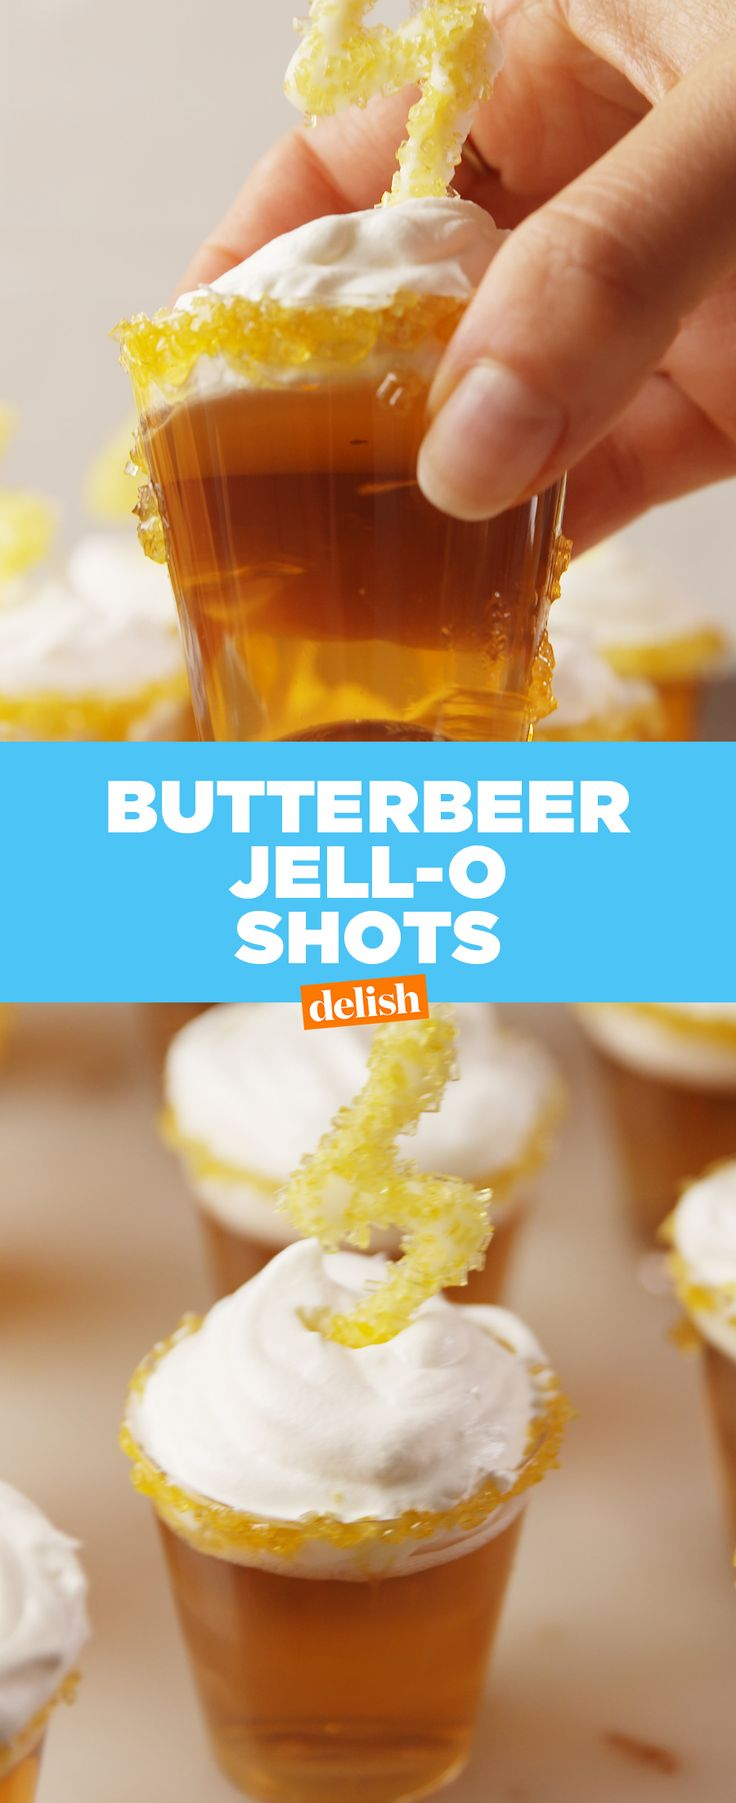 Harry Potter Butterbeer Jell-O Shots are only for true HP fans. Get the recipe at Delish.com.